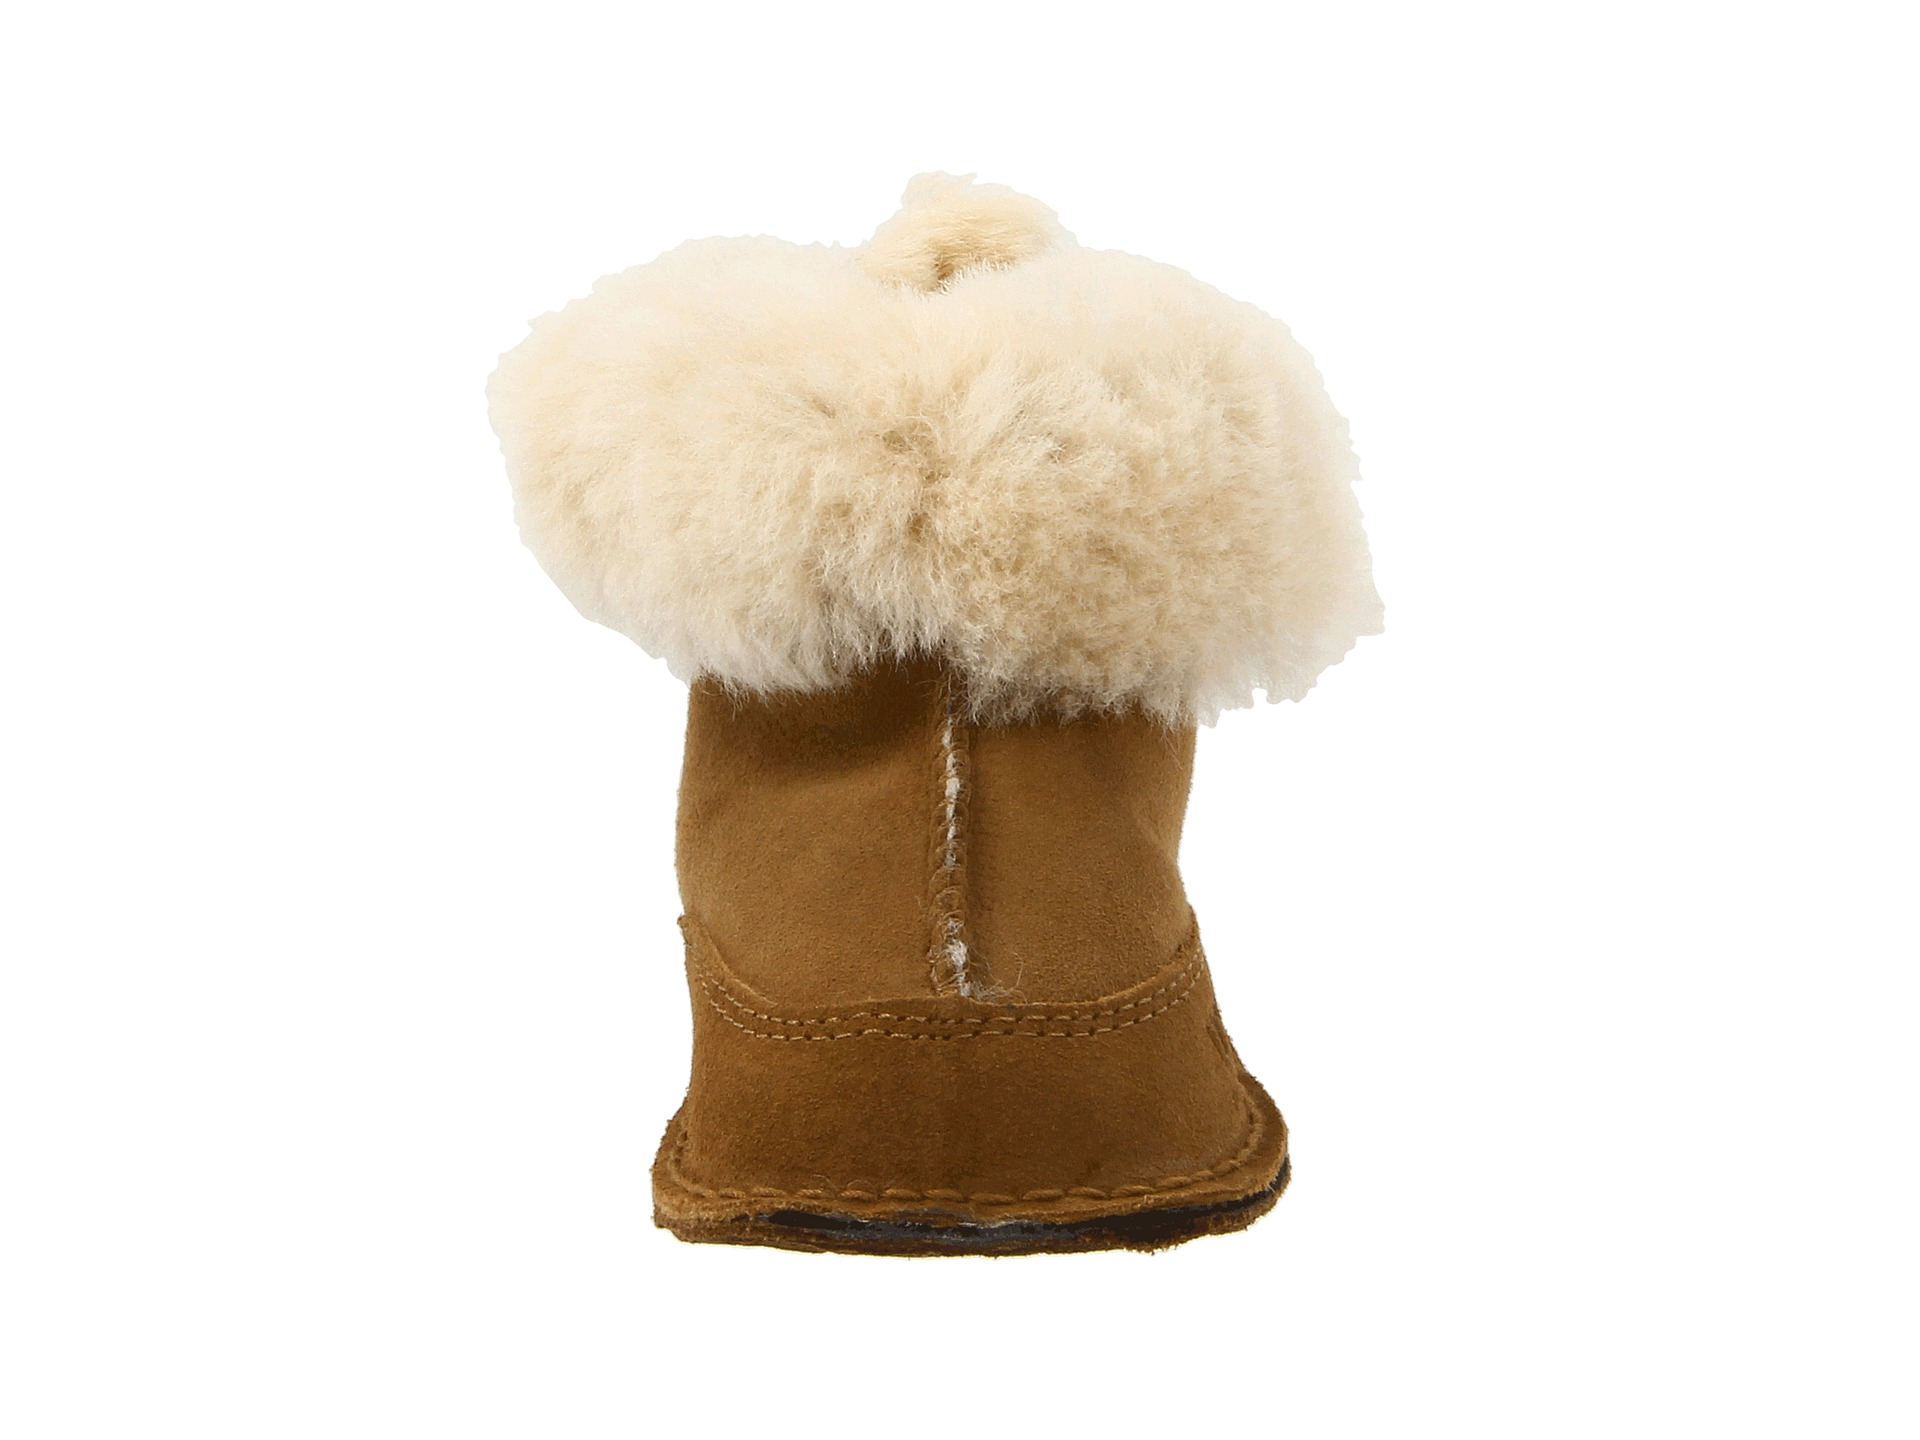 a33c5eb89f6 Ugg Baby Boo Boots - cheap watches mgc-gas.com